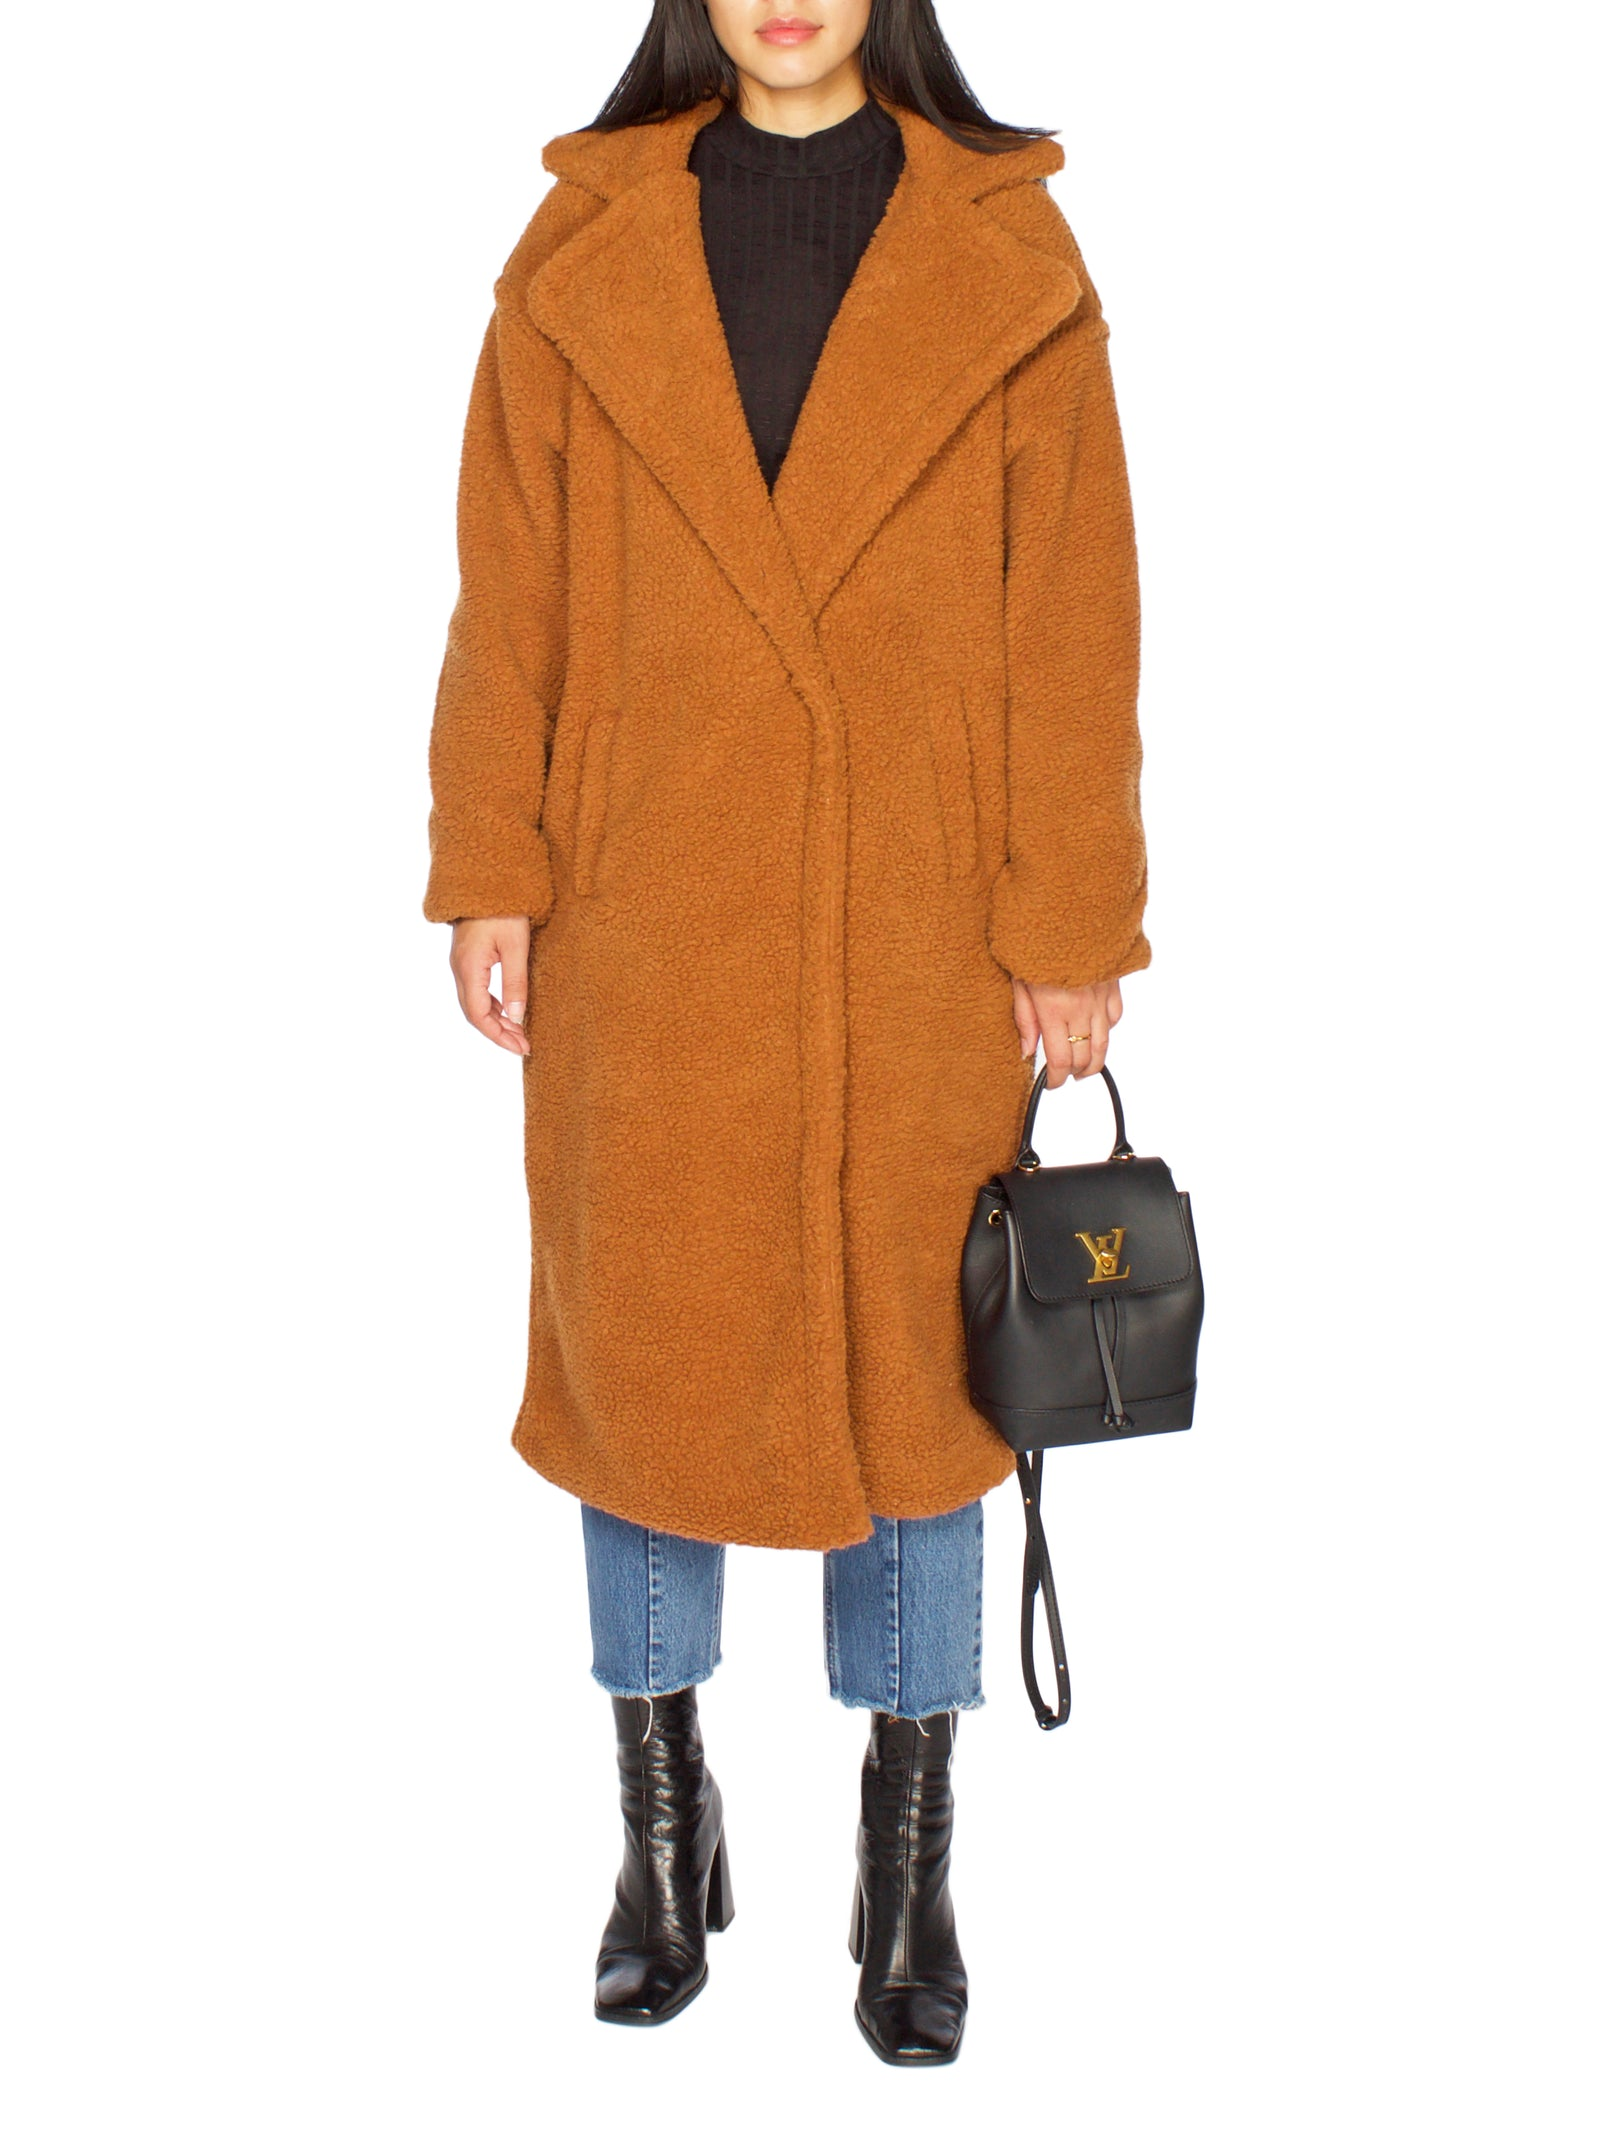 LISA Oversized Teddy Bear Coat - PRADEGAL